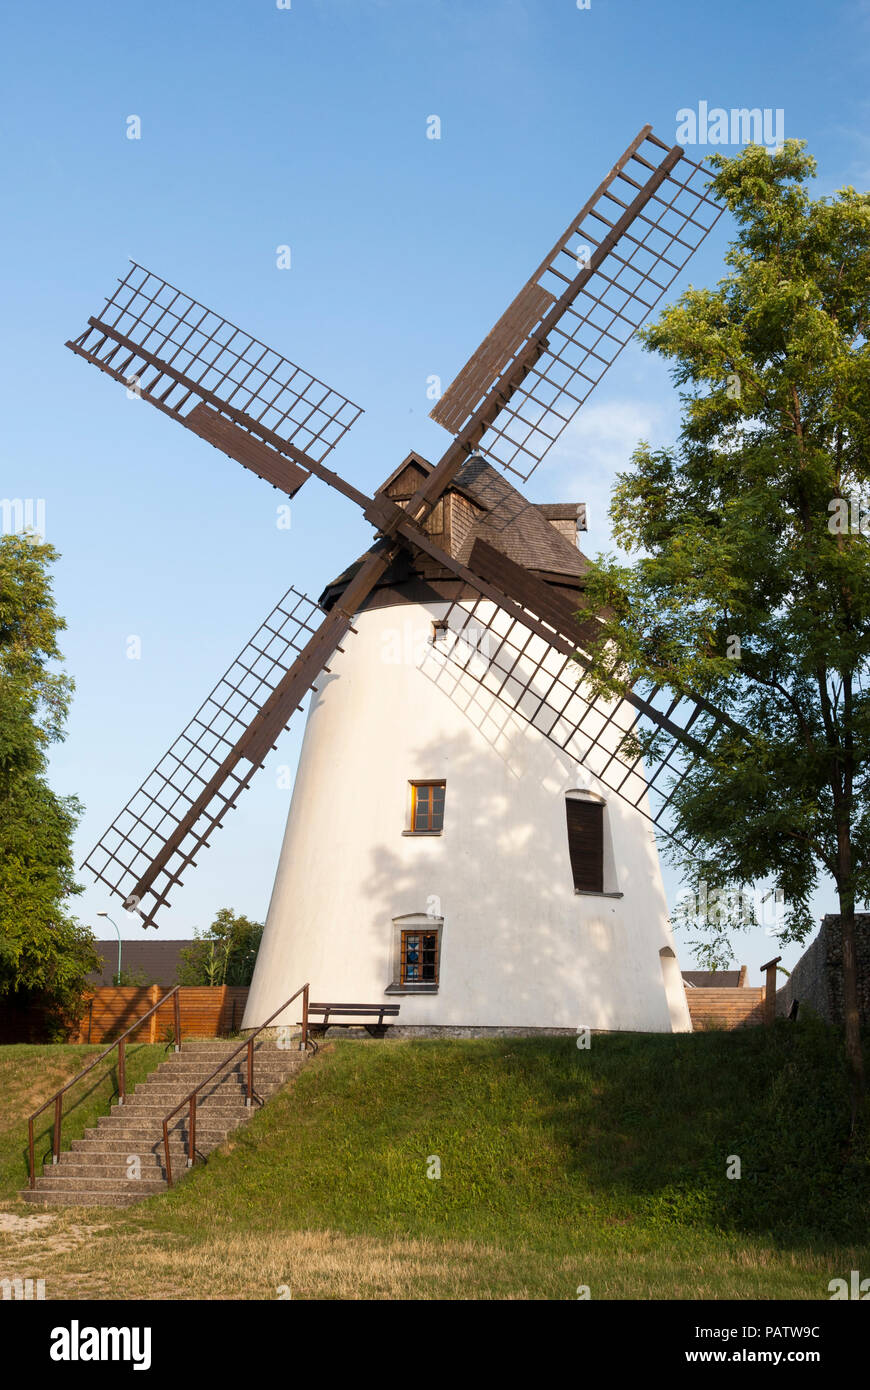 A traditional windmill at Podersdorf am See, Neusiedler See, Burgenland, Austria - Stock Image